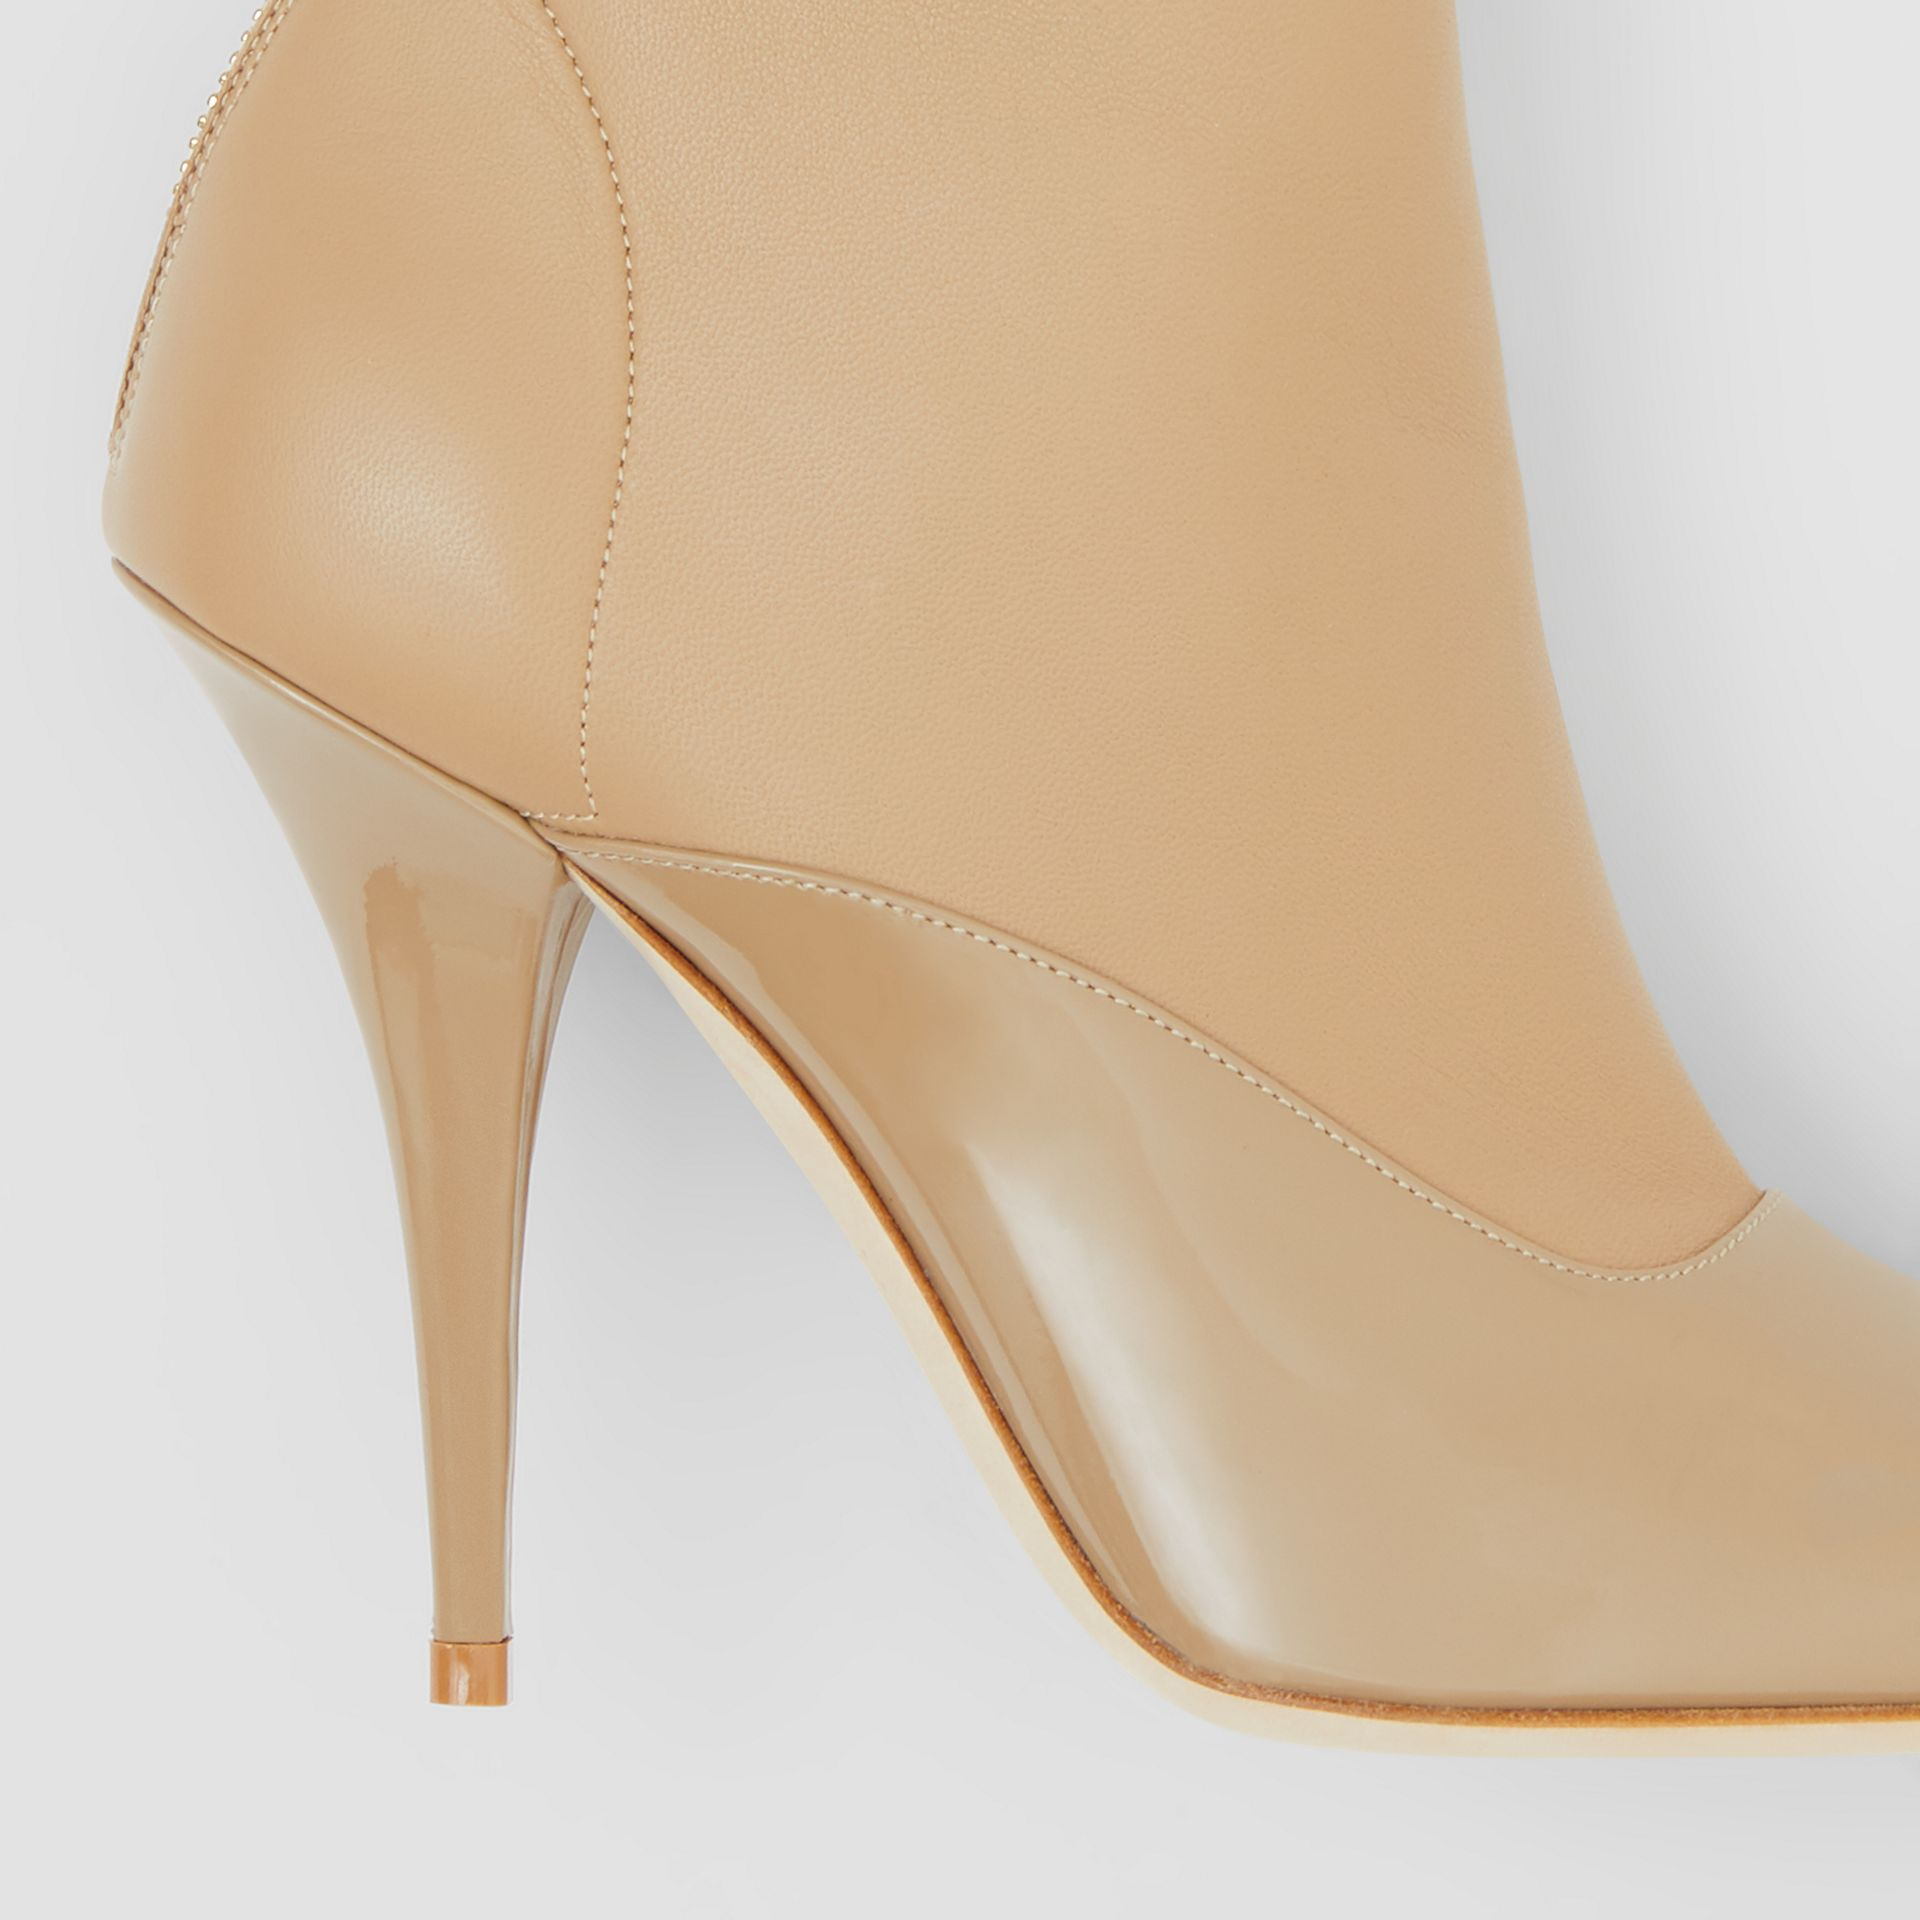 Lambskin and Patent Leather Ankle Boots in Dark Honey - Women | Burberry Australia - gallery image 1